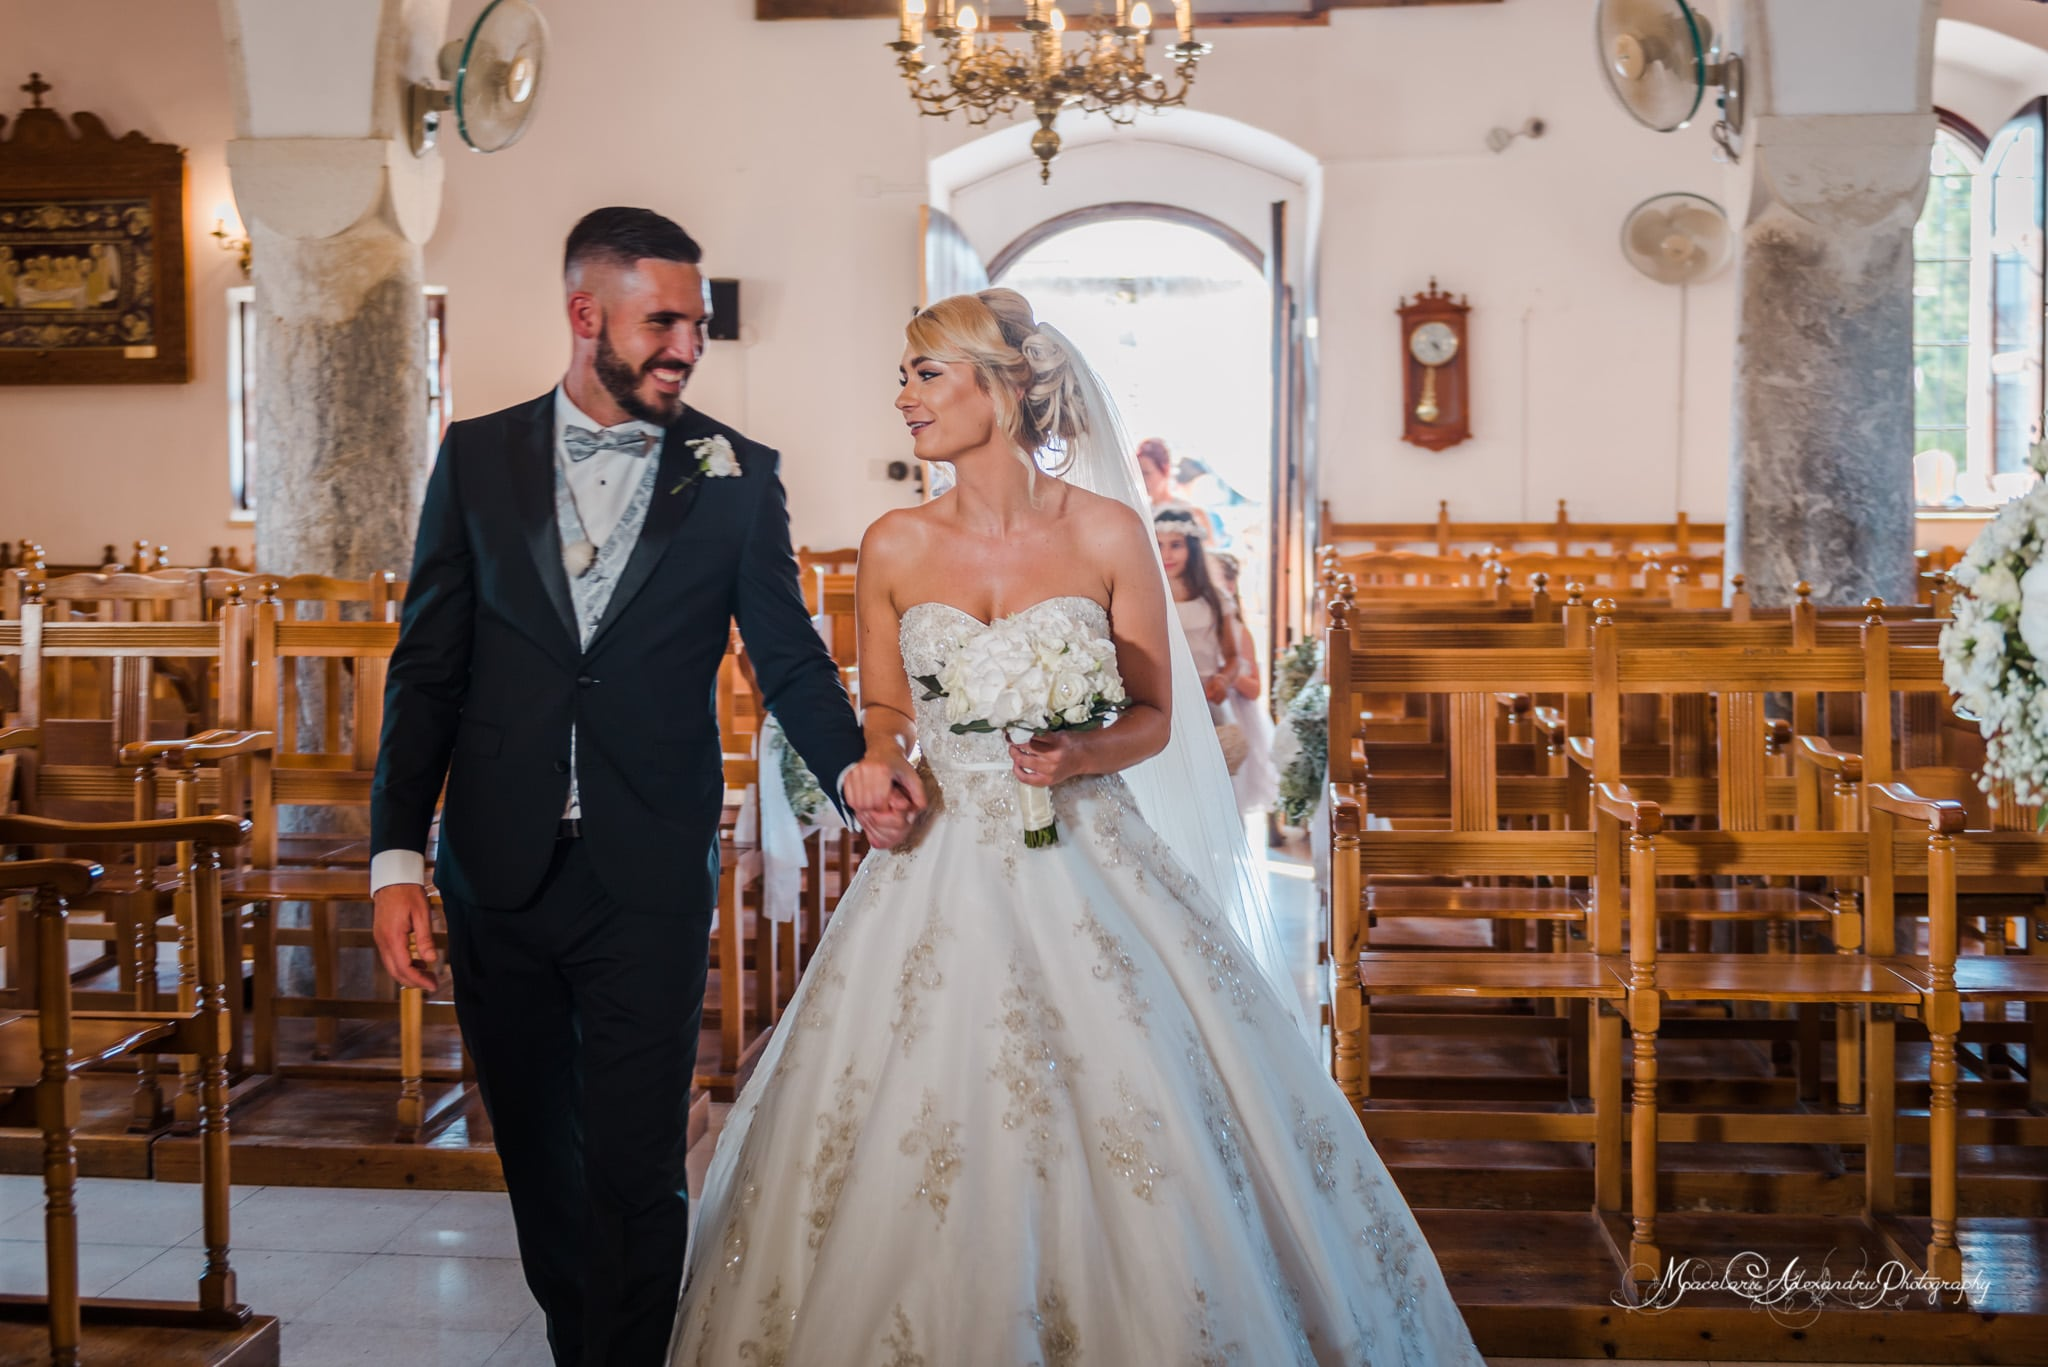 Wedding photography in Paphos - The bride and groom in the church